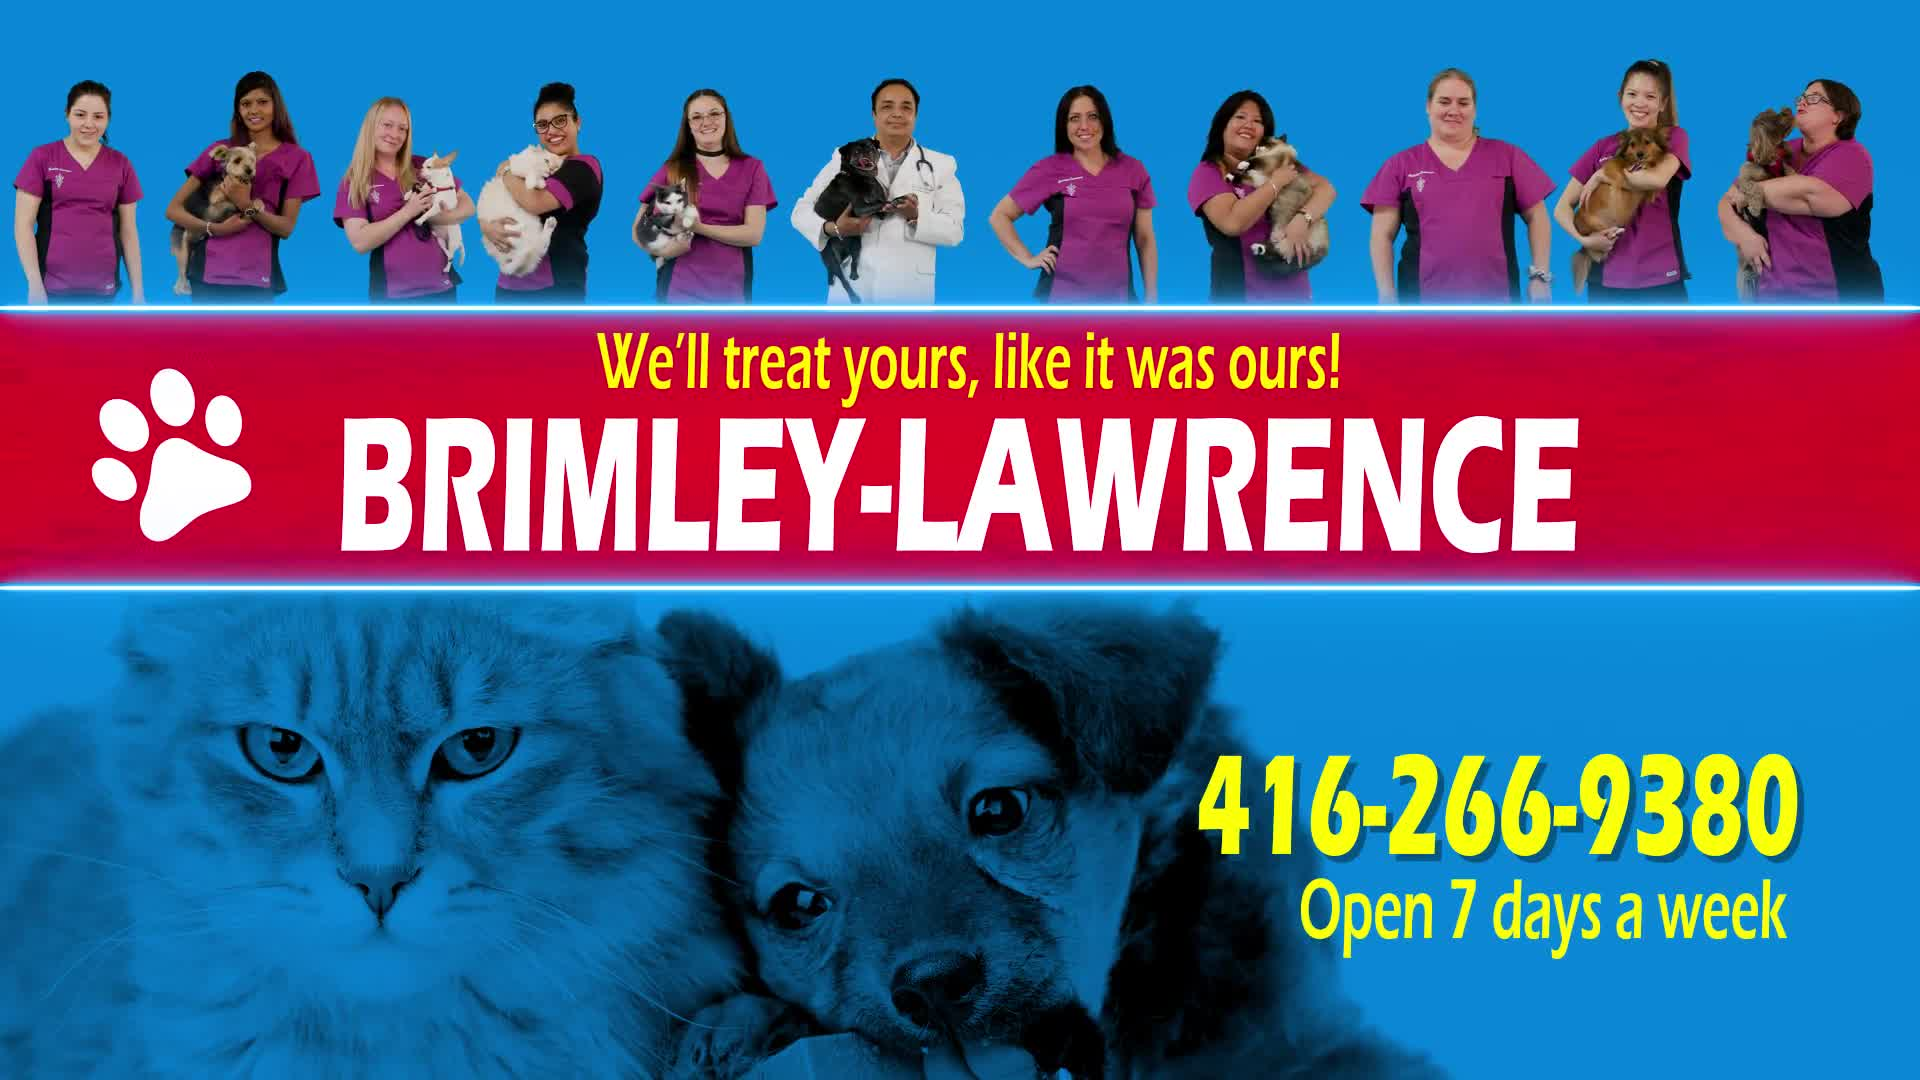 View Brimley-Lawrence Animal Clinic's Toronto profile